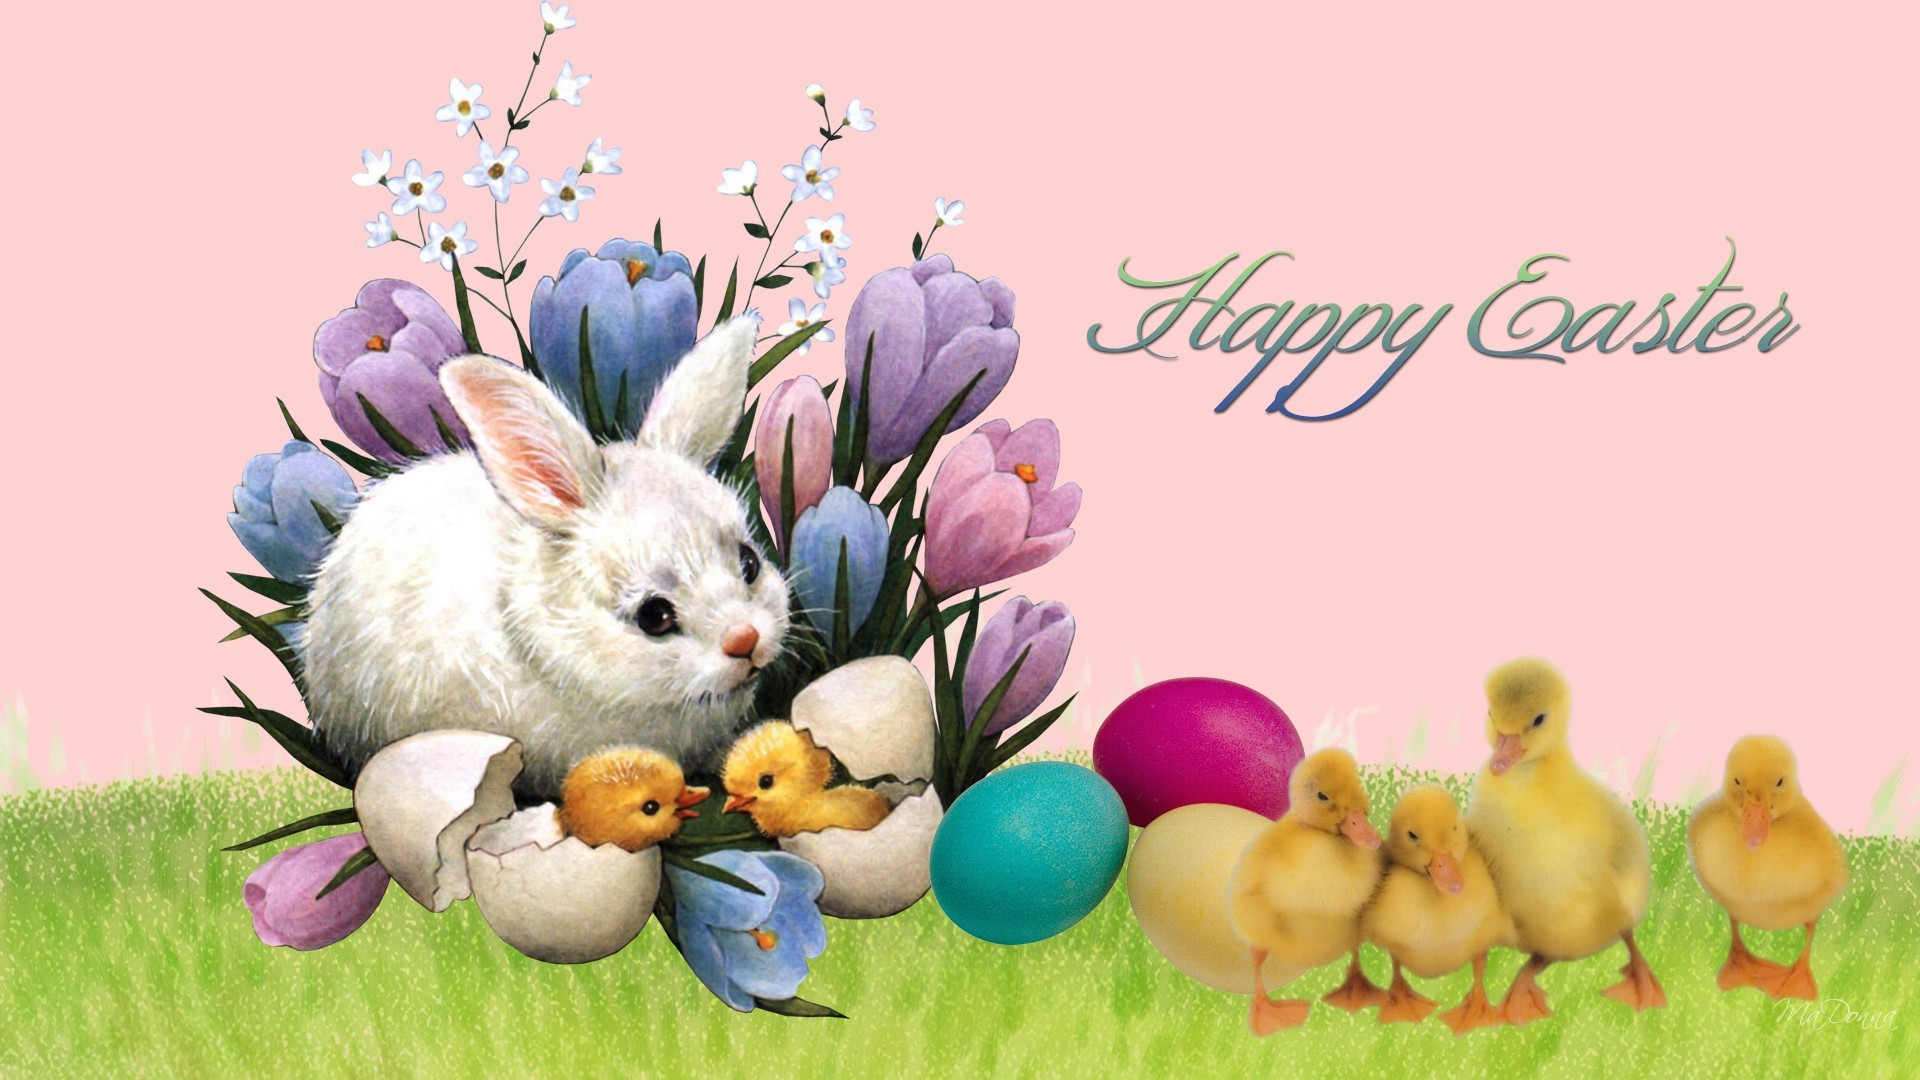 Free Easter Bunny Wallpaper (14)